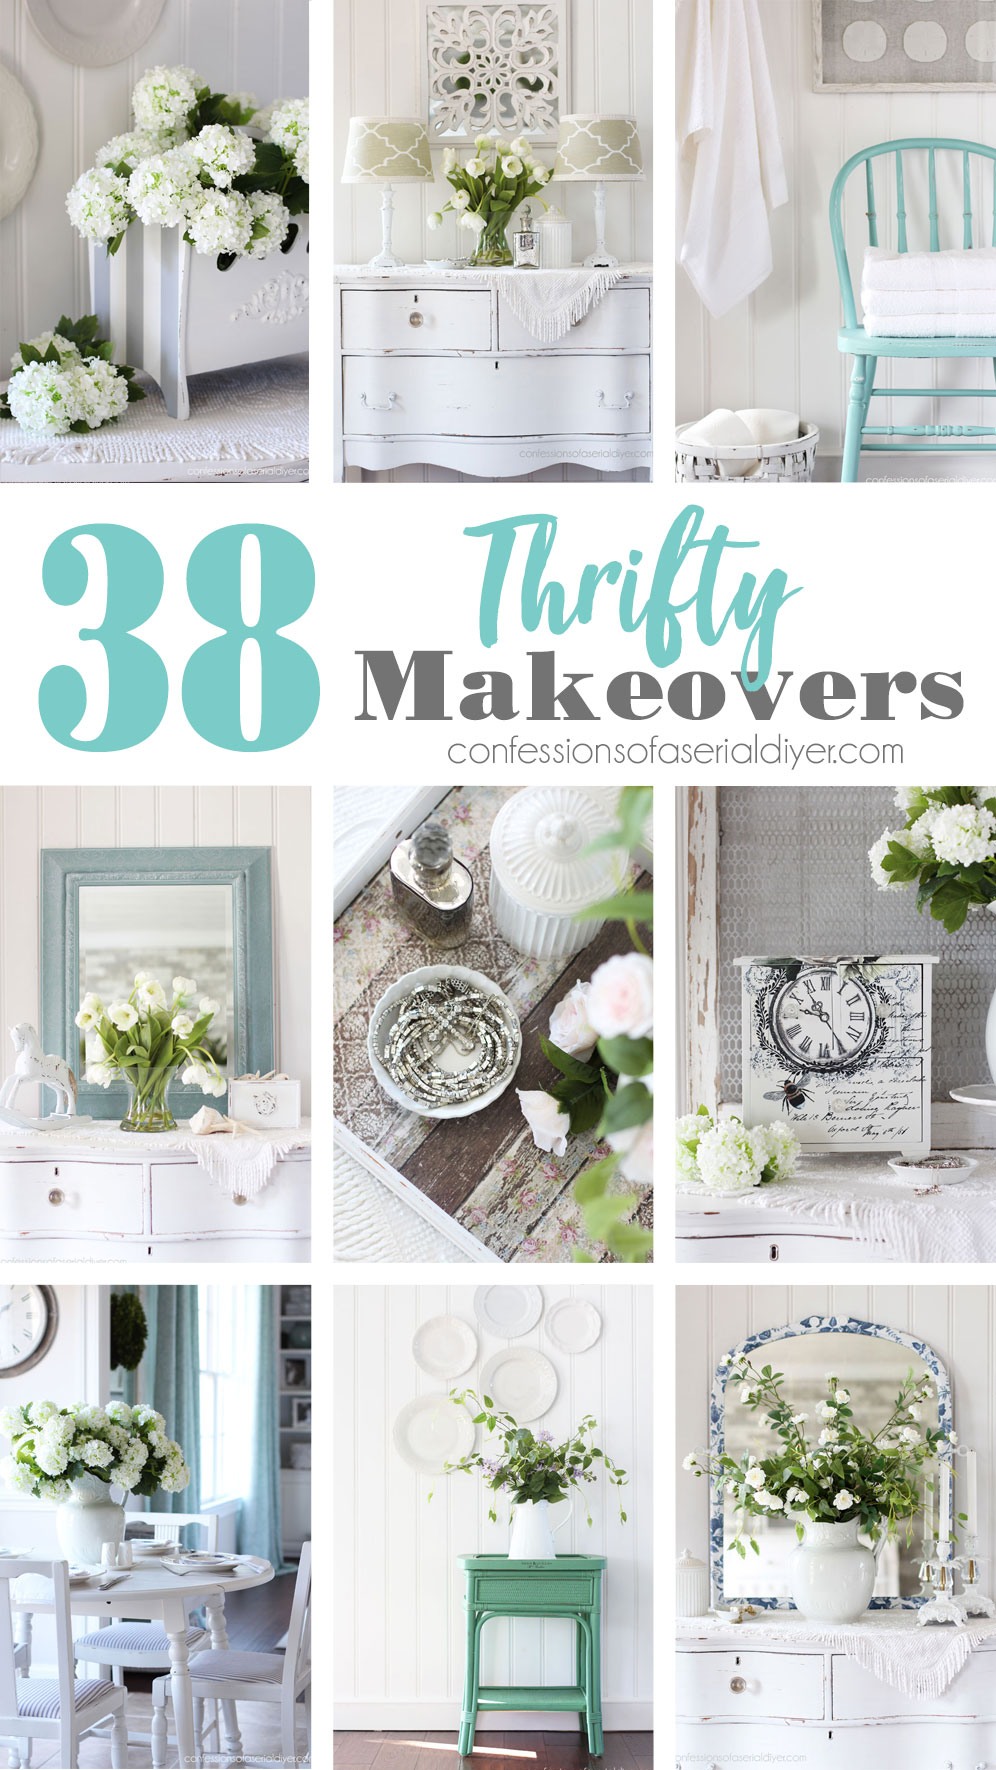 38 Thrifty Makeovers You can do!